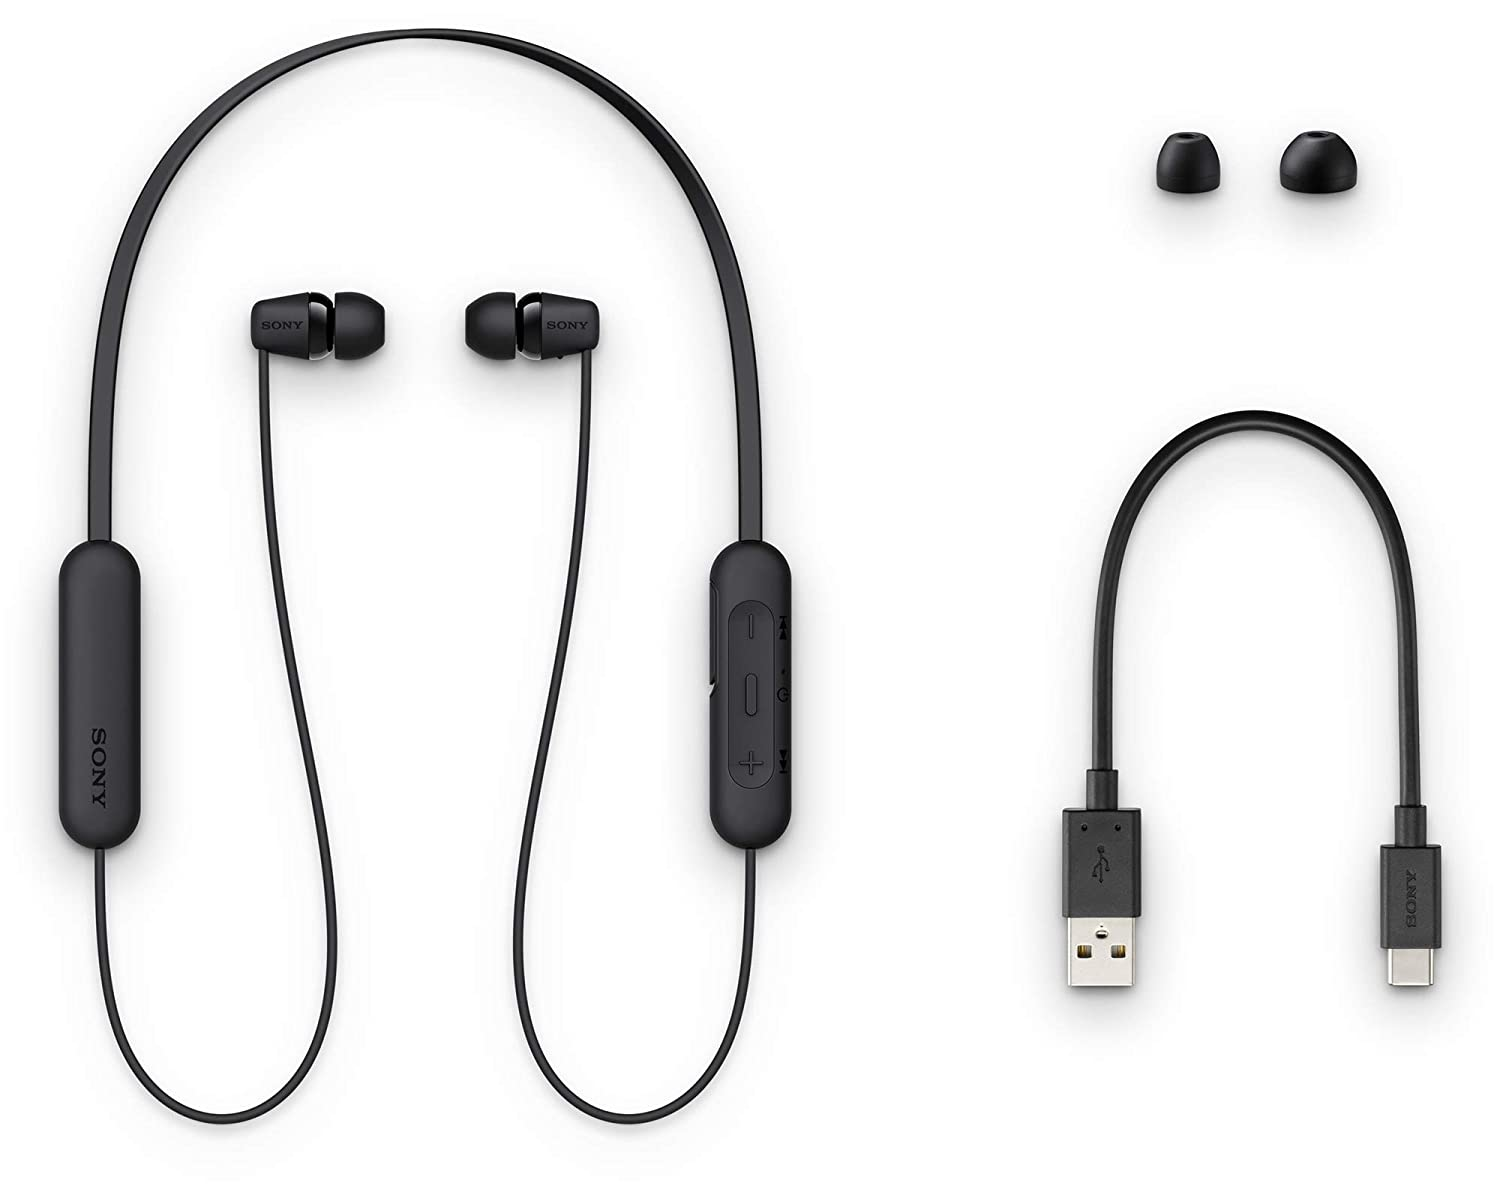 ony WI-C200 Wireless In-Ear Headphones with 15 Hours Battery Life